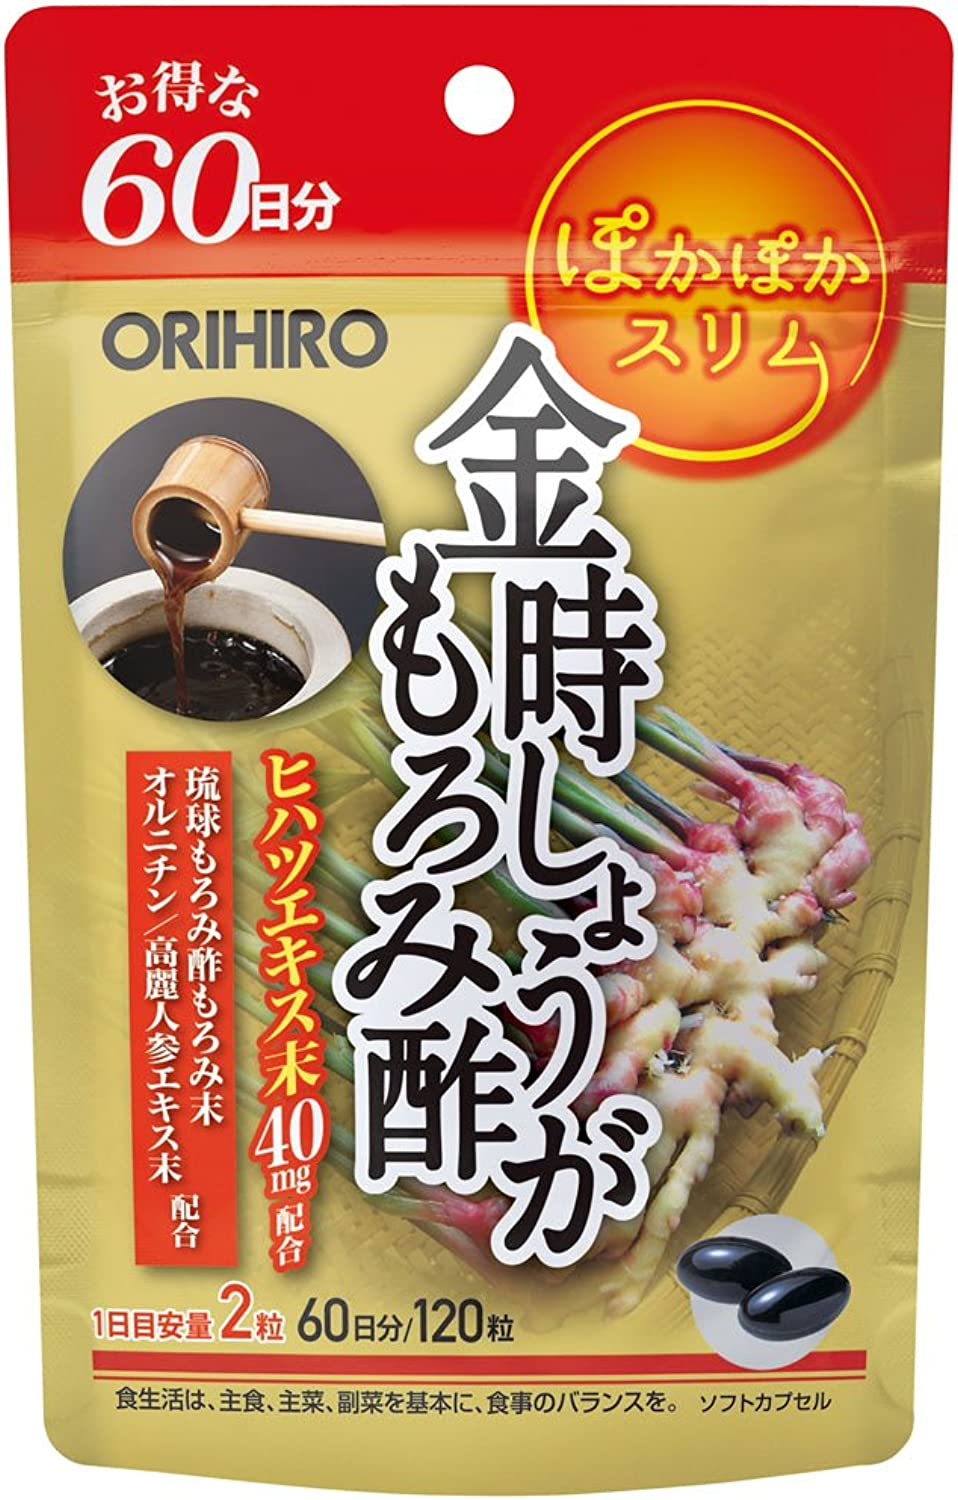 120 Grain Orihiro Kidney Ginger Mash Vinegar Capsule Economical